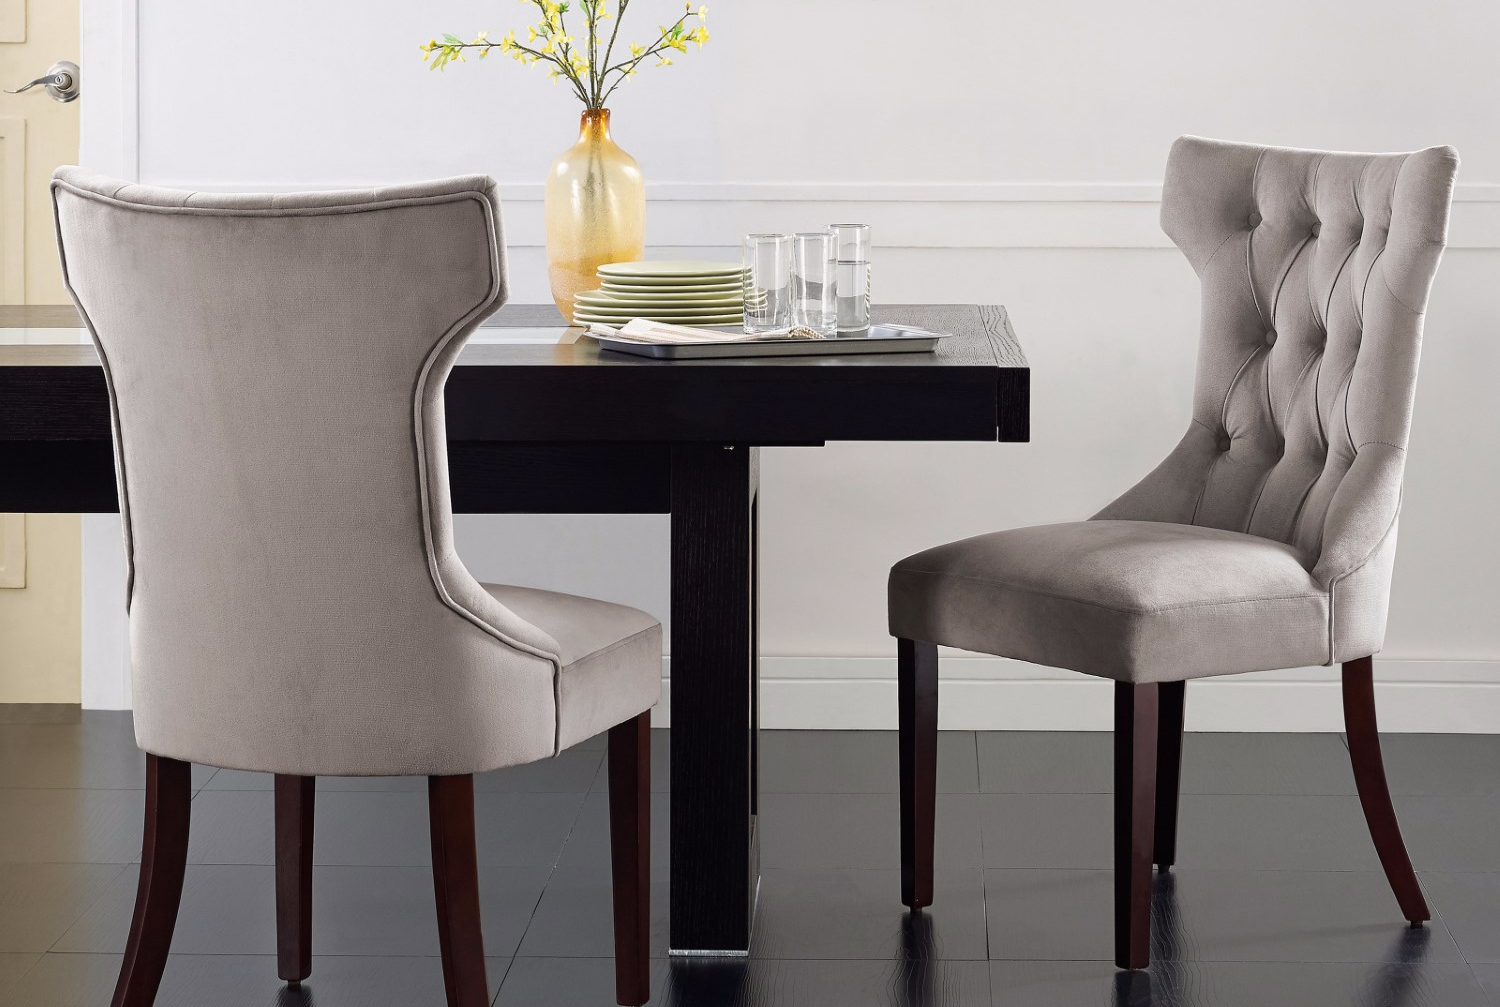 Clairborne Tufted Dining Chair